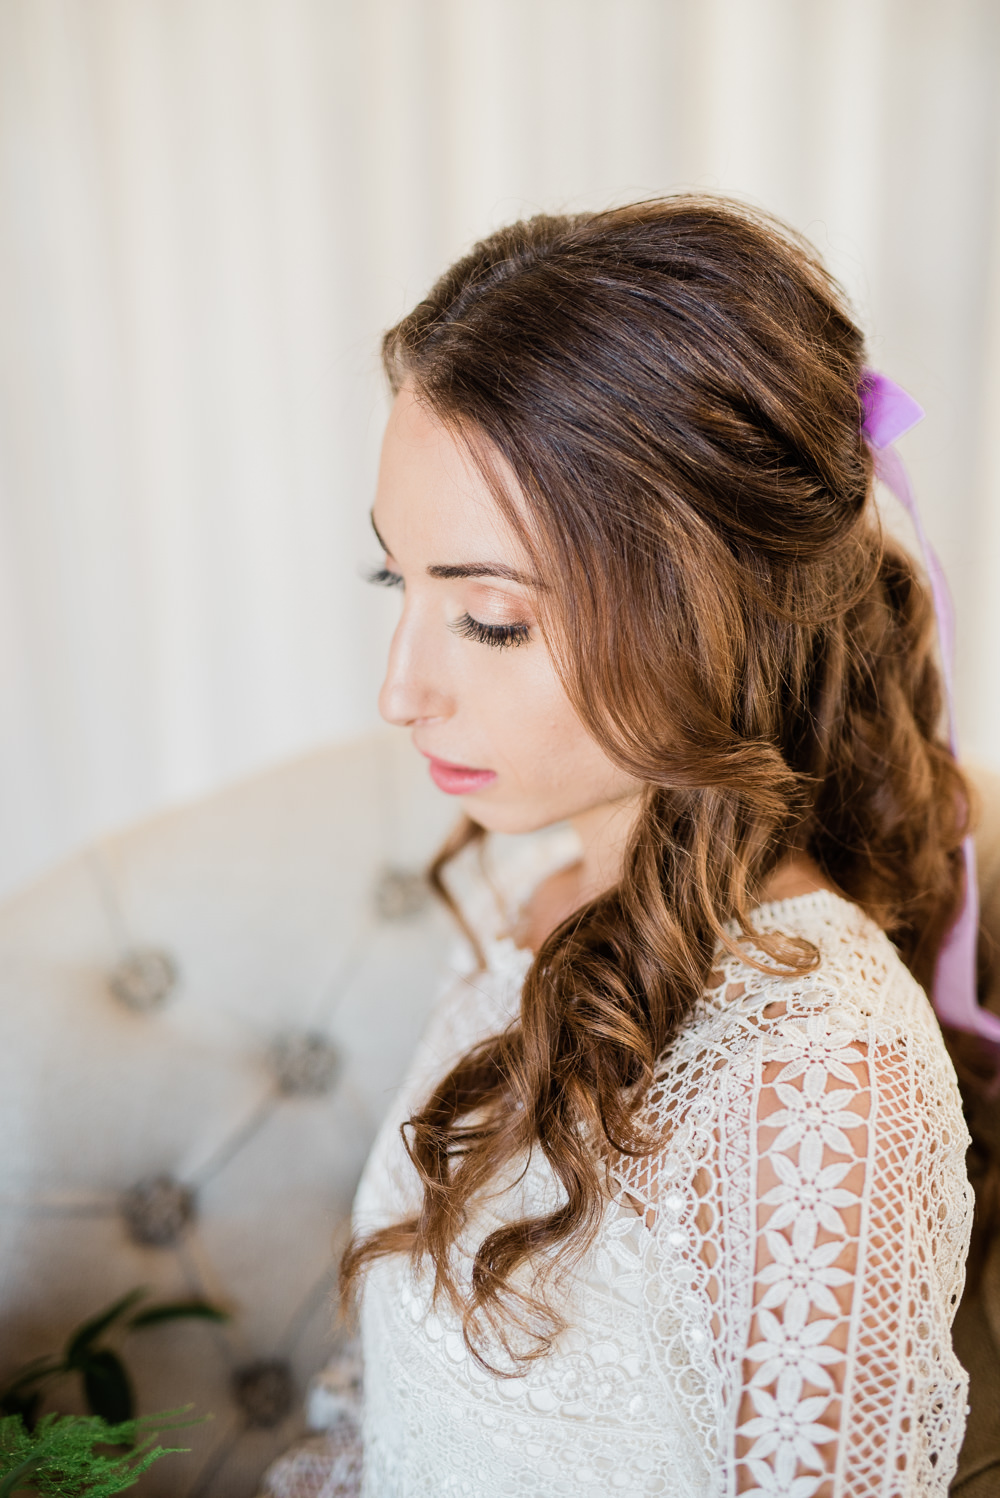 Bride Bridal Make Up Beauty Hair Style Waves Velvet Ribbon Bow Ultra Violet Wedding Moon Gate Flower Arch Captured by Katrina Photography